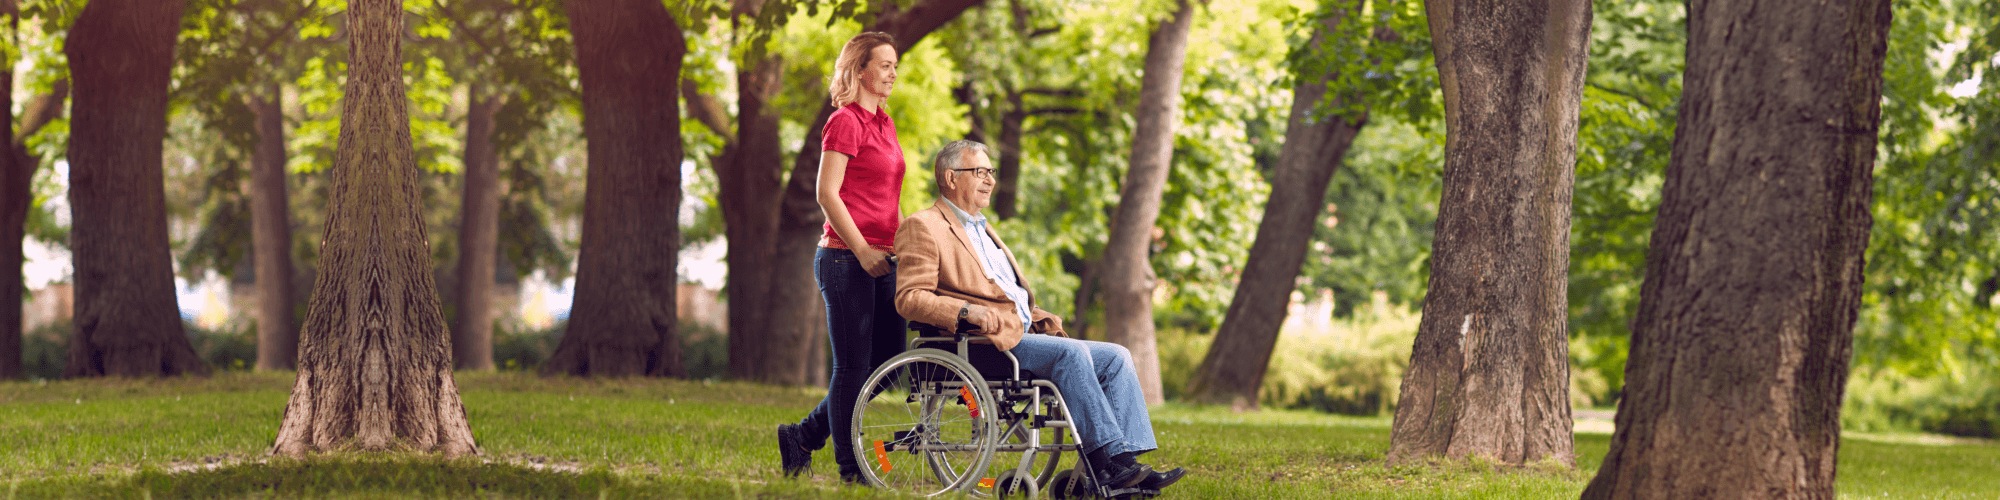 woman assisting senior man on wheelchair